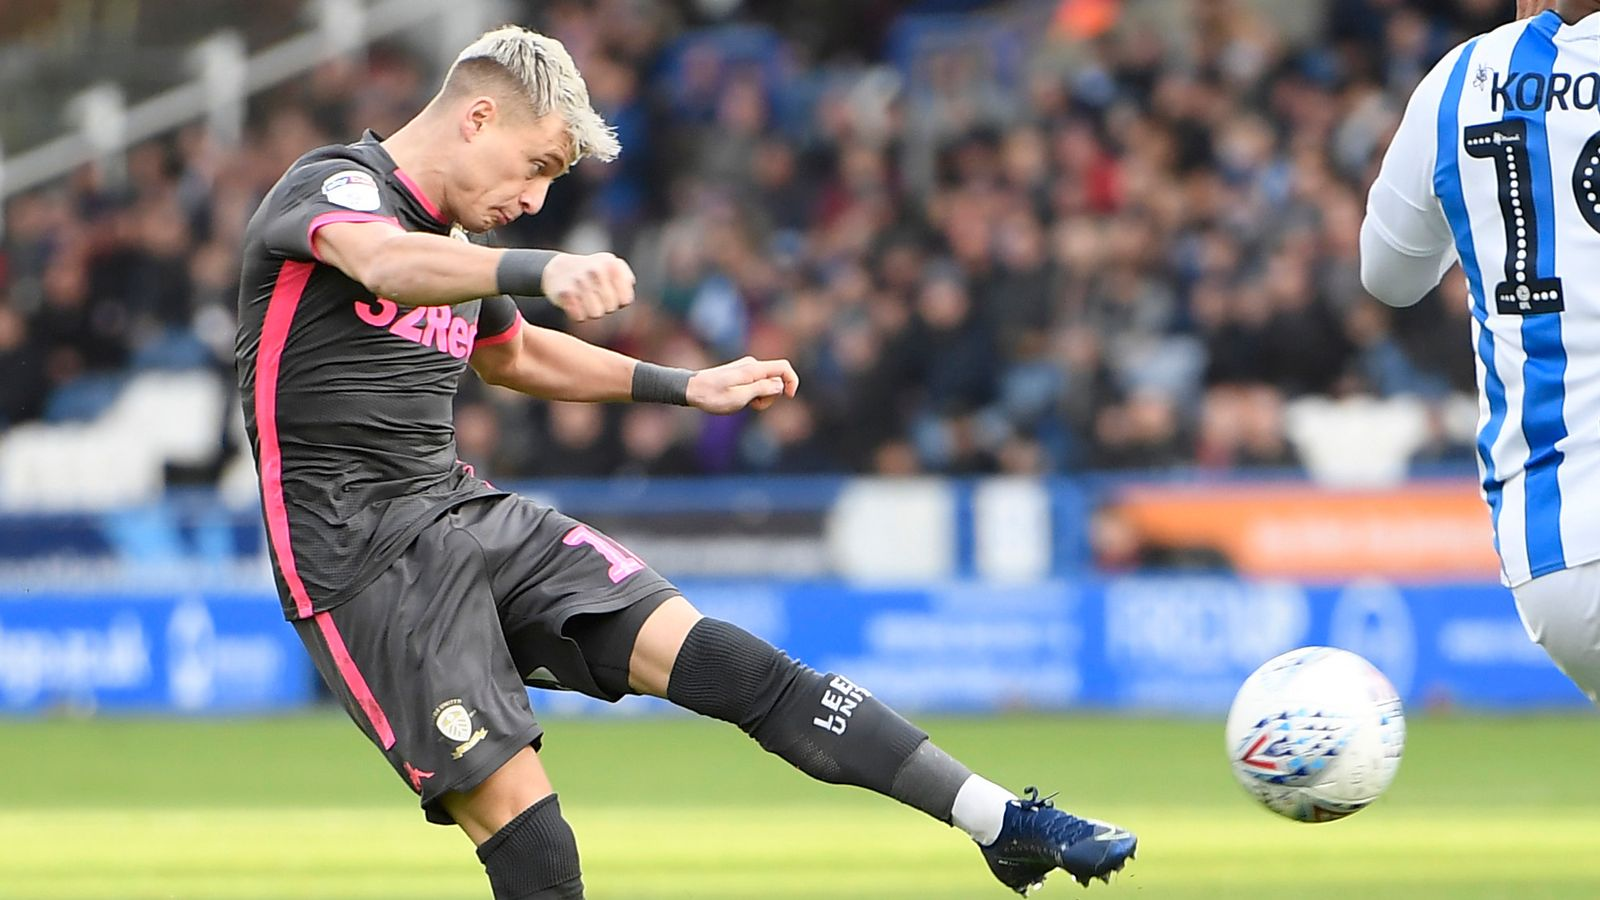 Huddersfield 0-2 Leeds: Marcelo Bielsa's side go top of the league after sixth straight win